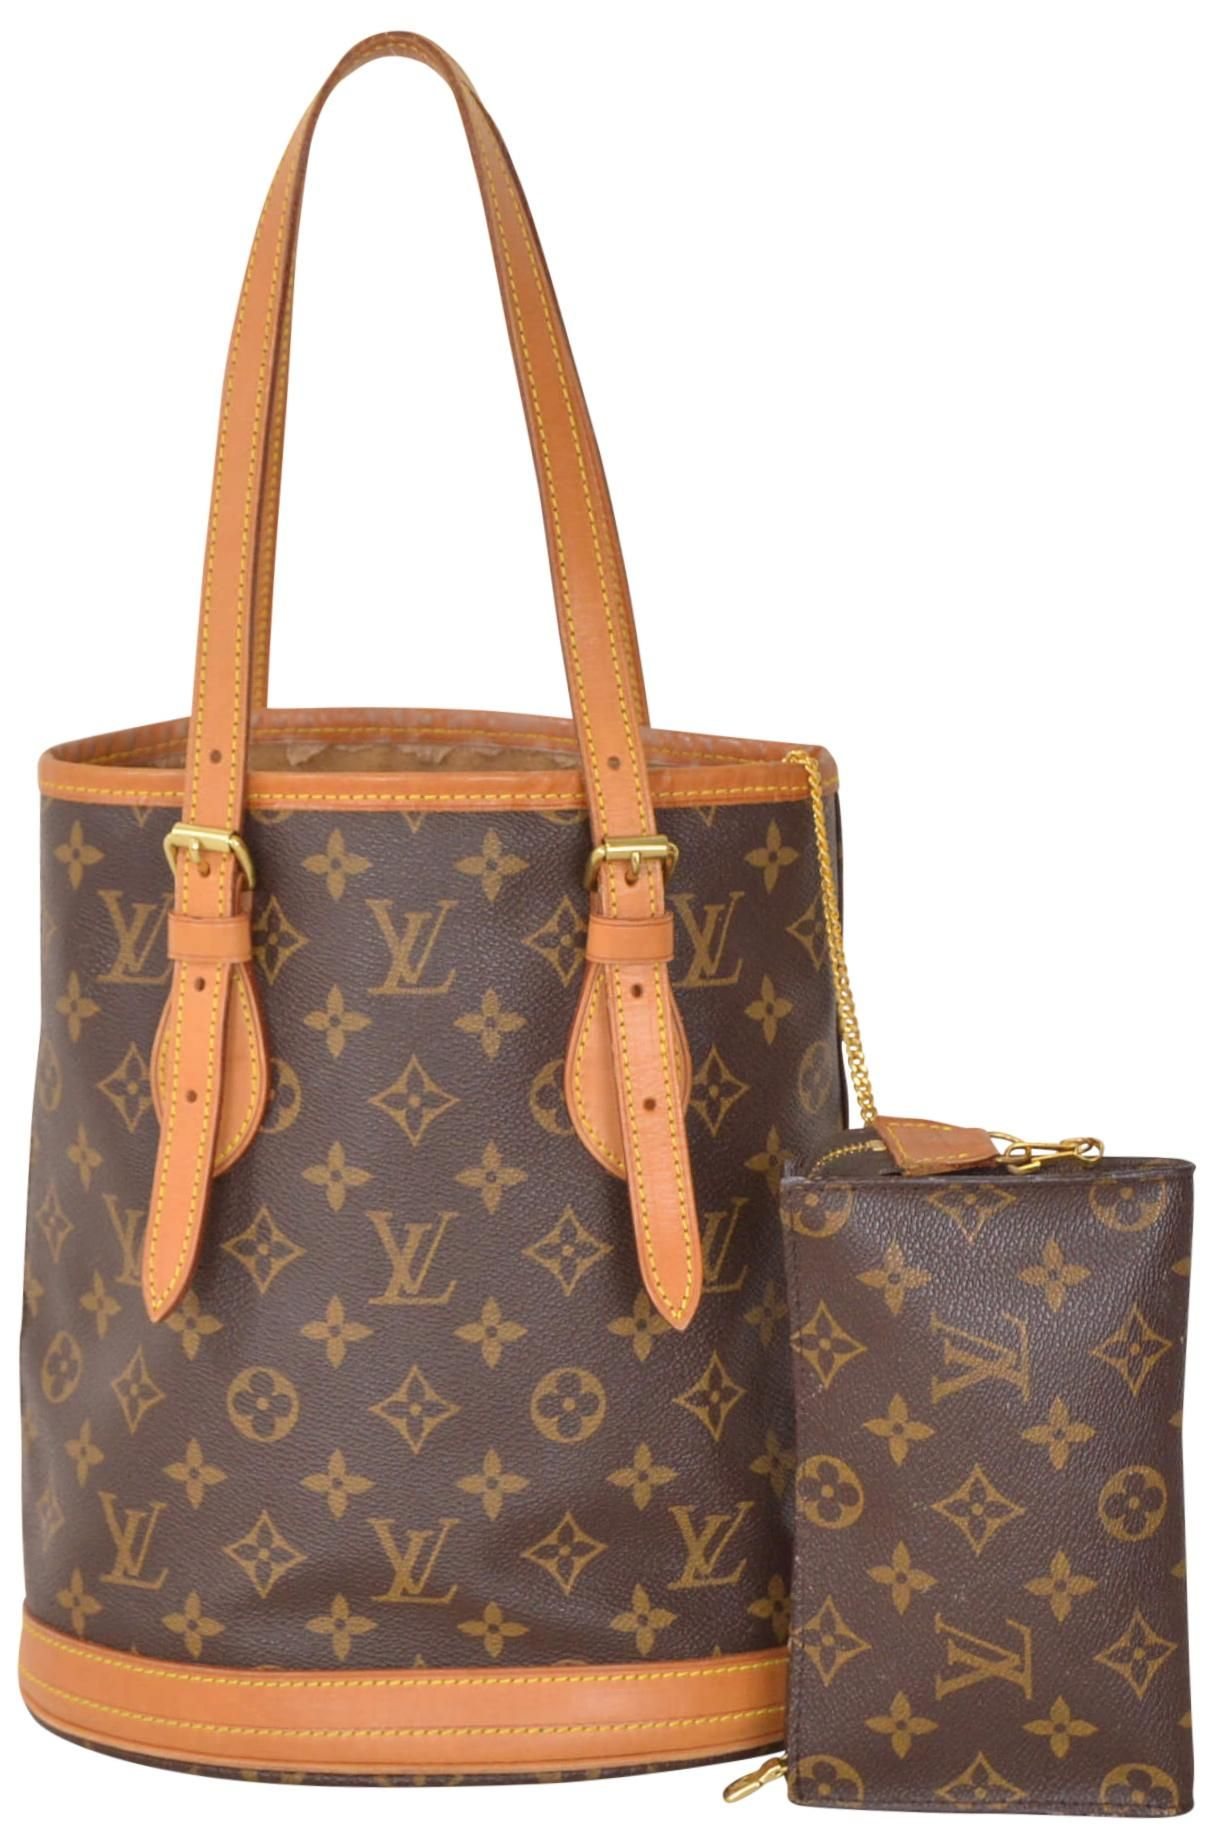 Louis Vuitton Monogram Bucket Pm M42238 Brown Tote Bag. Get one of the hottest styles of the season! The Louis Vuitton Monogram Bucket Pm M42238 Brown Tote Bag is a top 10 member favorite on Tradesy. Save on yours before they're sold out!